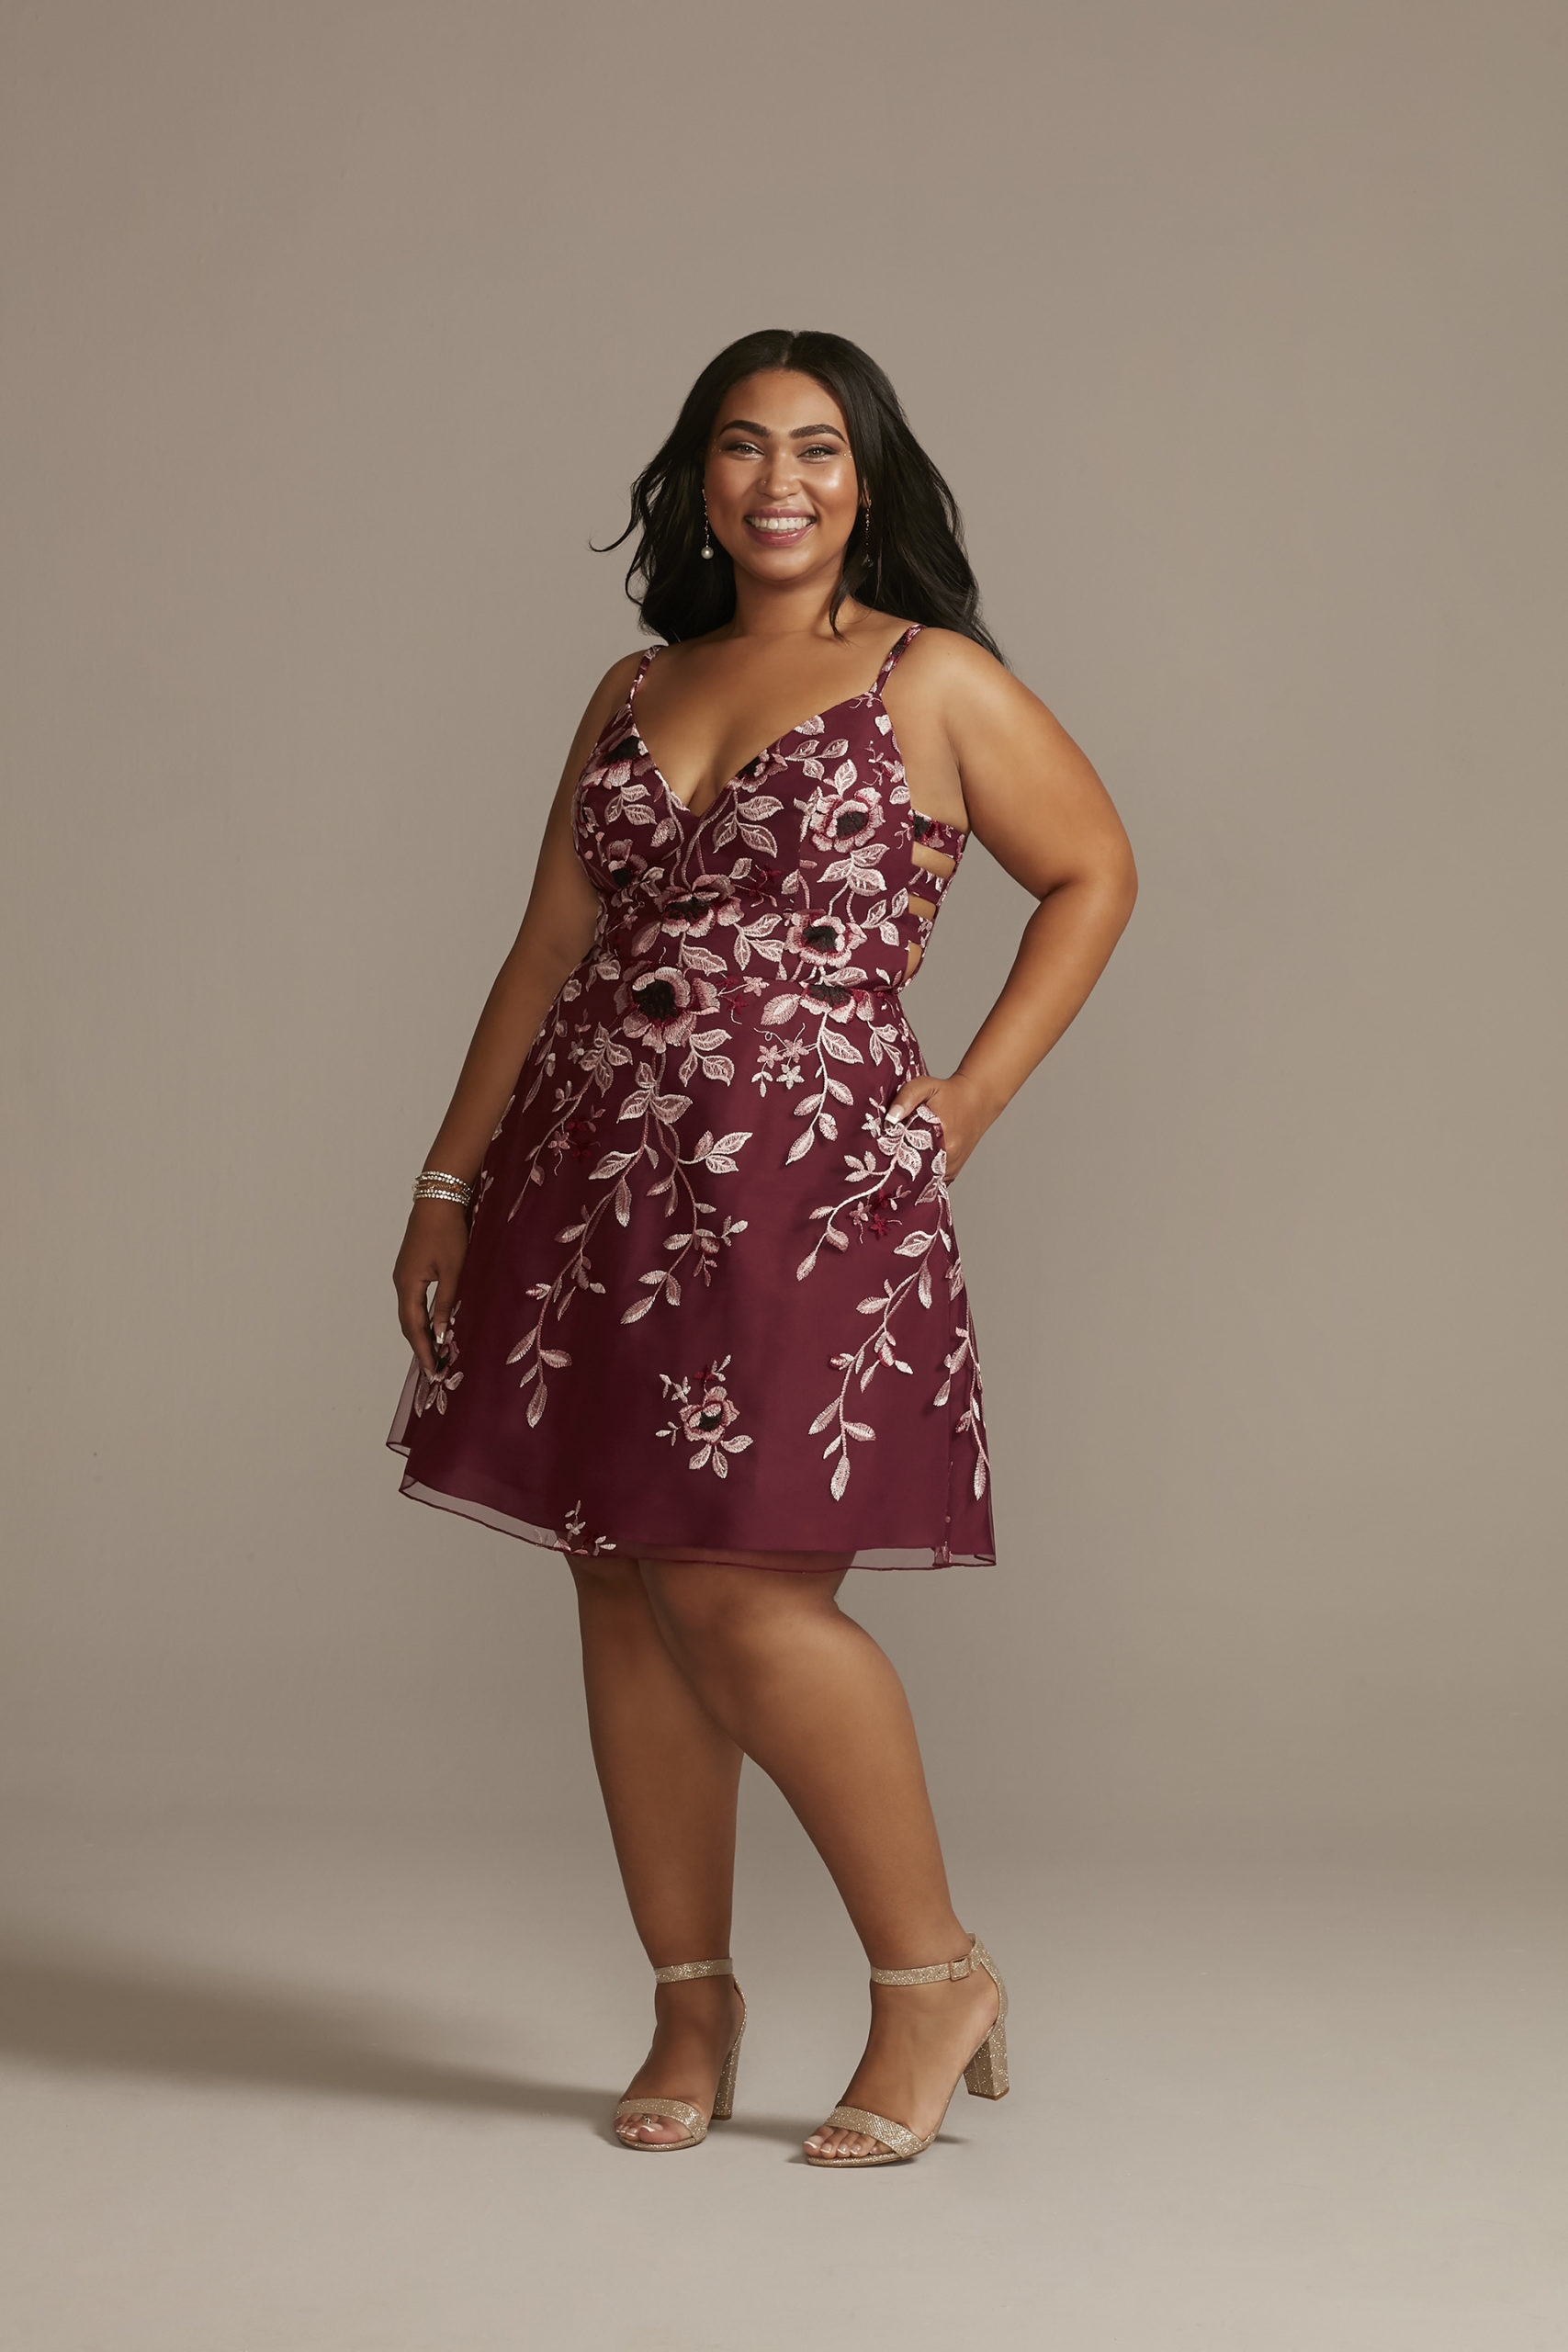 teen wearing floral maroon homecoming dress with side cutouts as homecoming dress idea